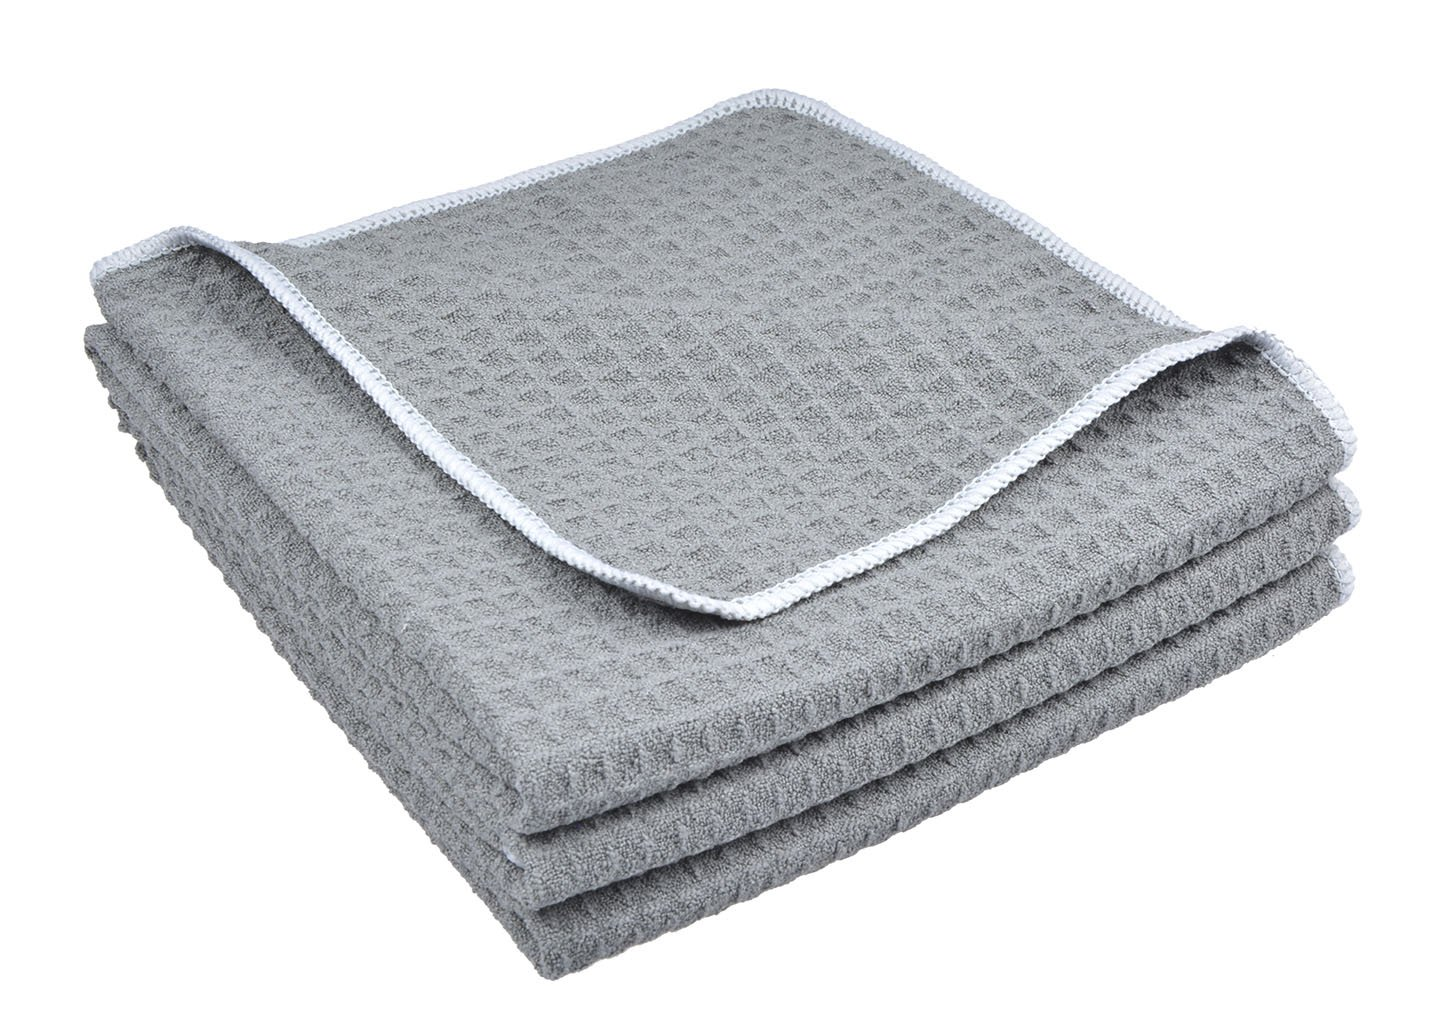 Sinland Microfiber Waffle Weave Kitchen Towels Dish Cloth 3 Pack 16inch X 24inch Grey